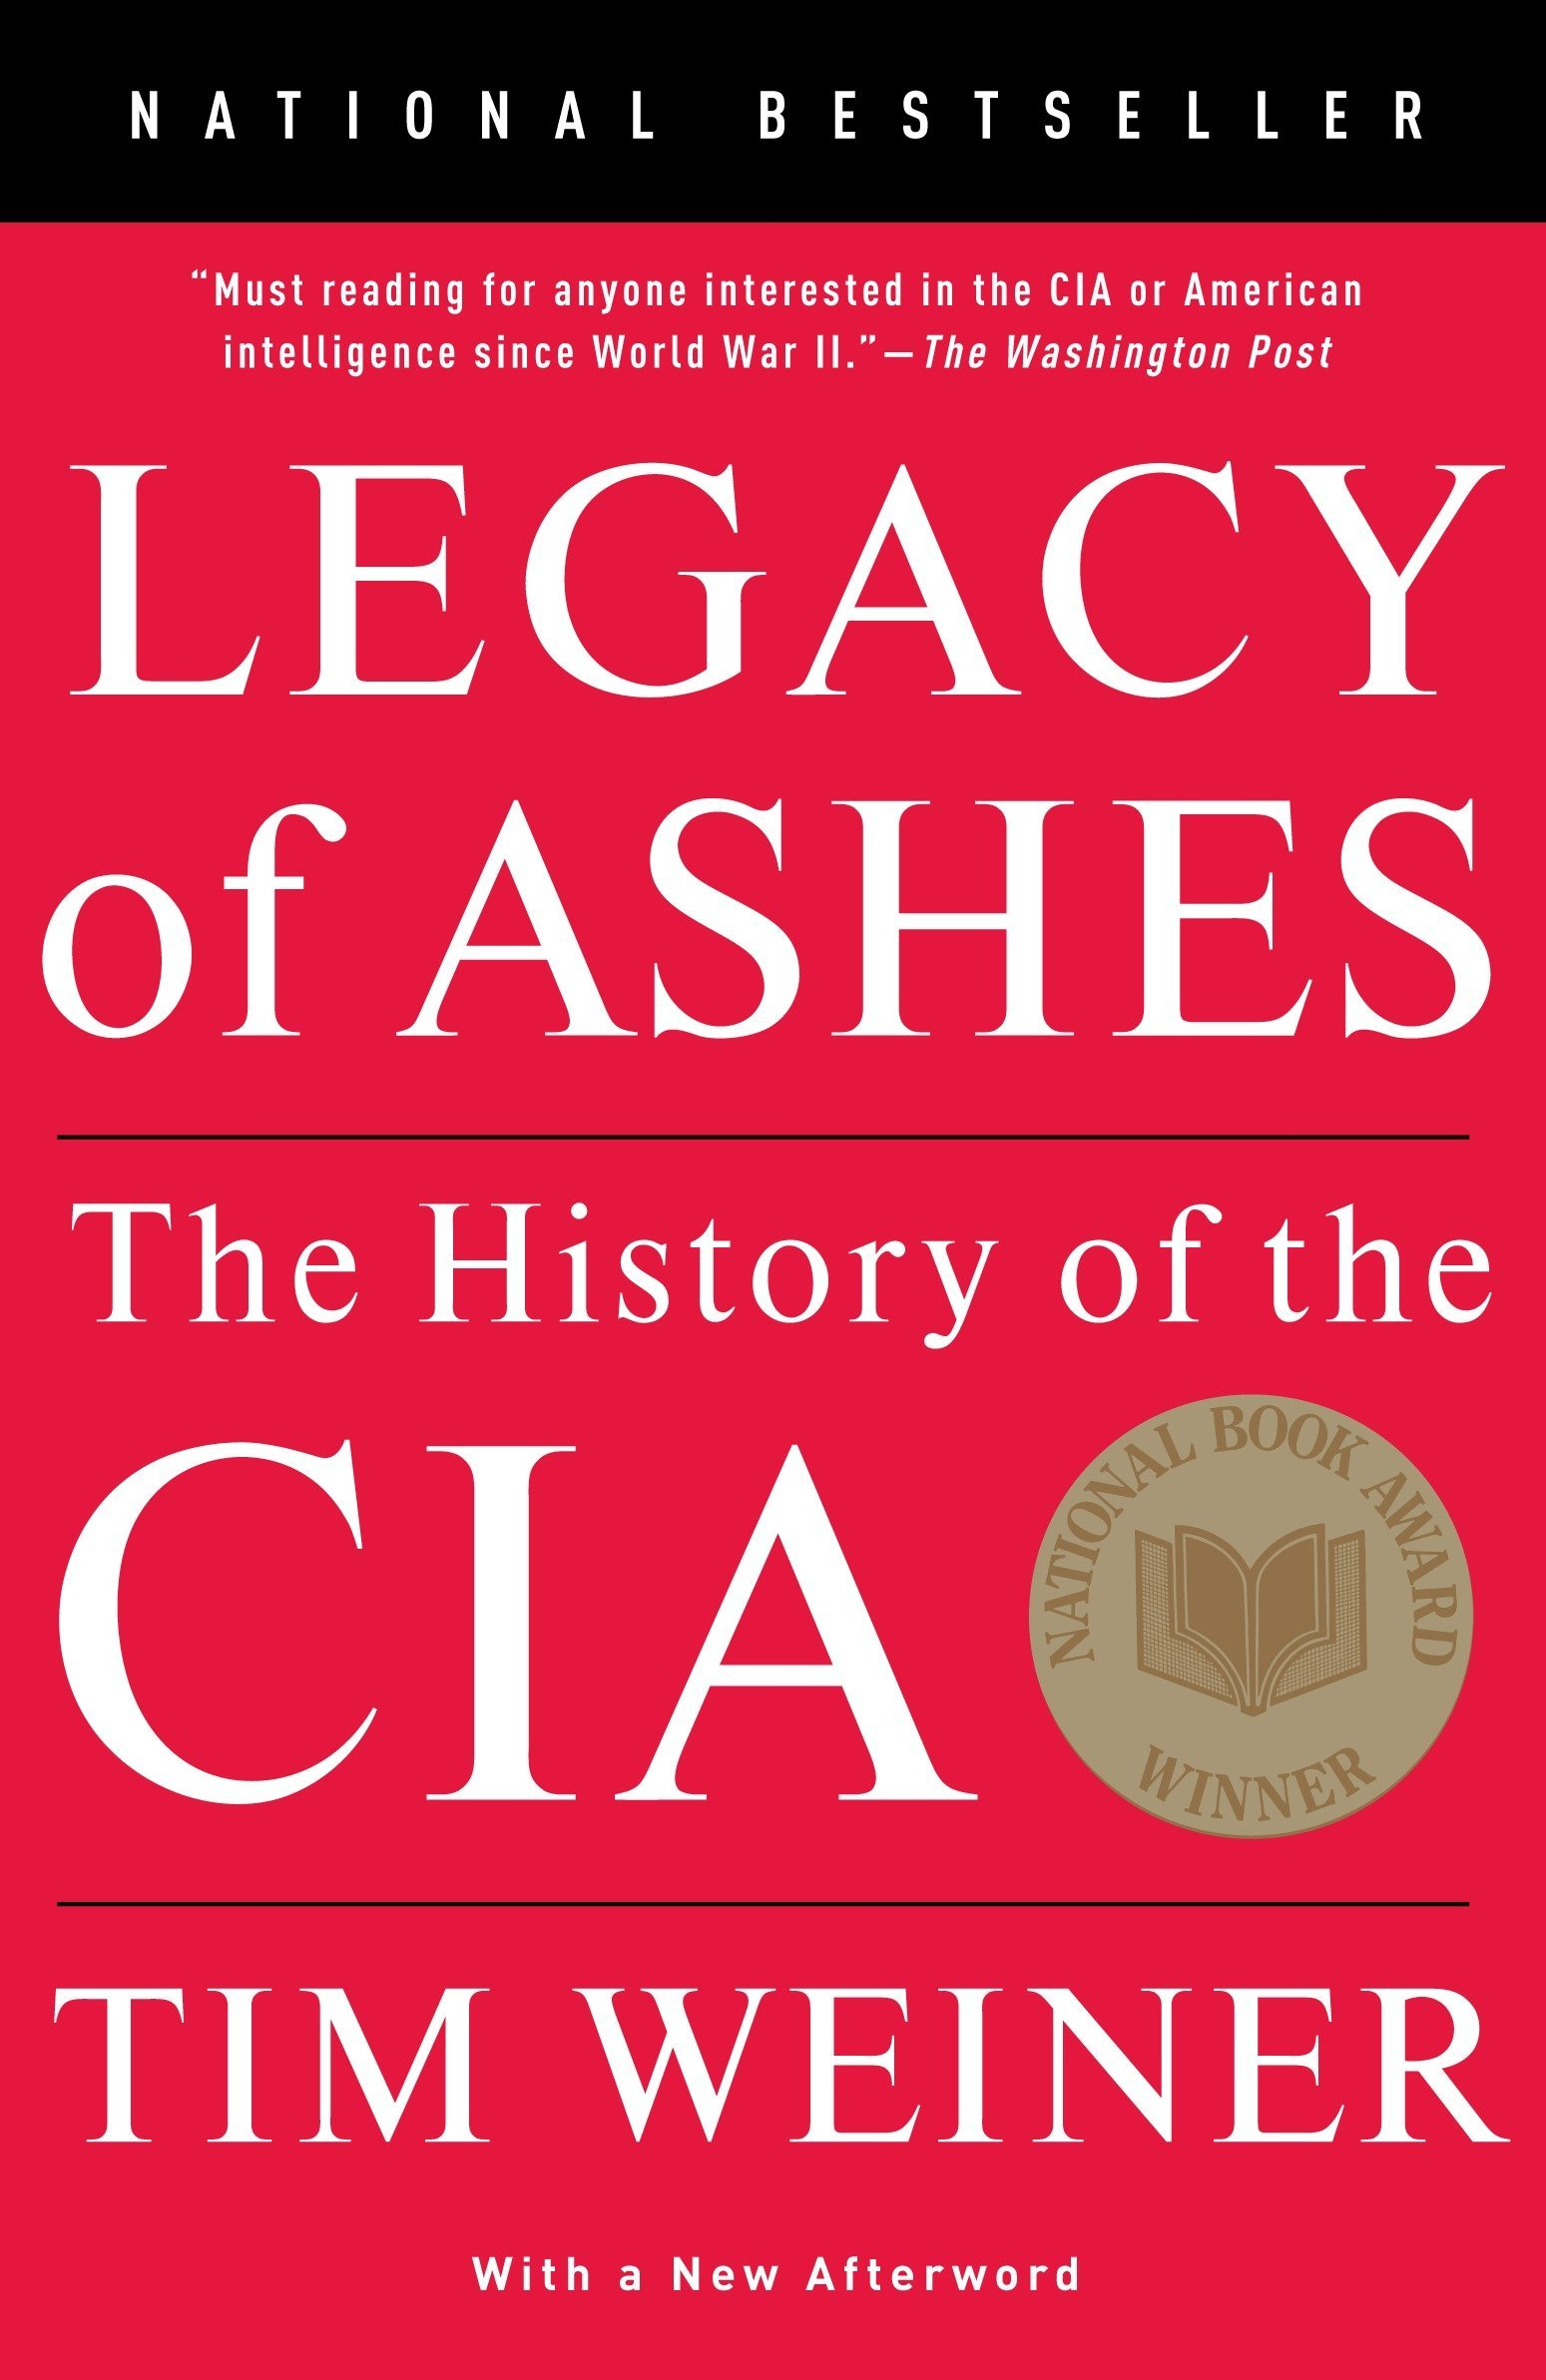 The founding and history of the cia